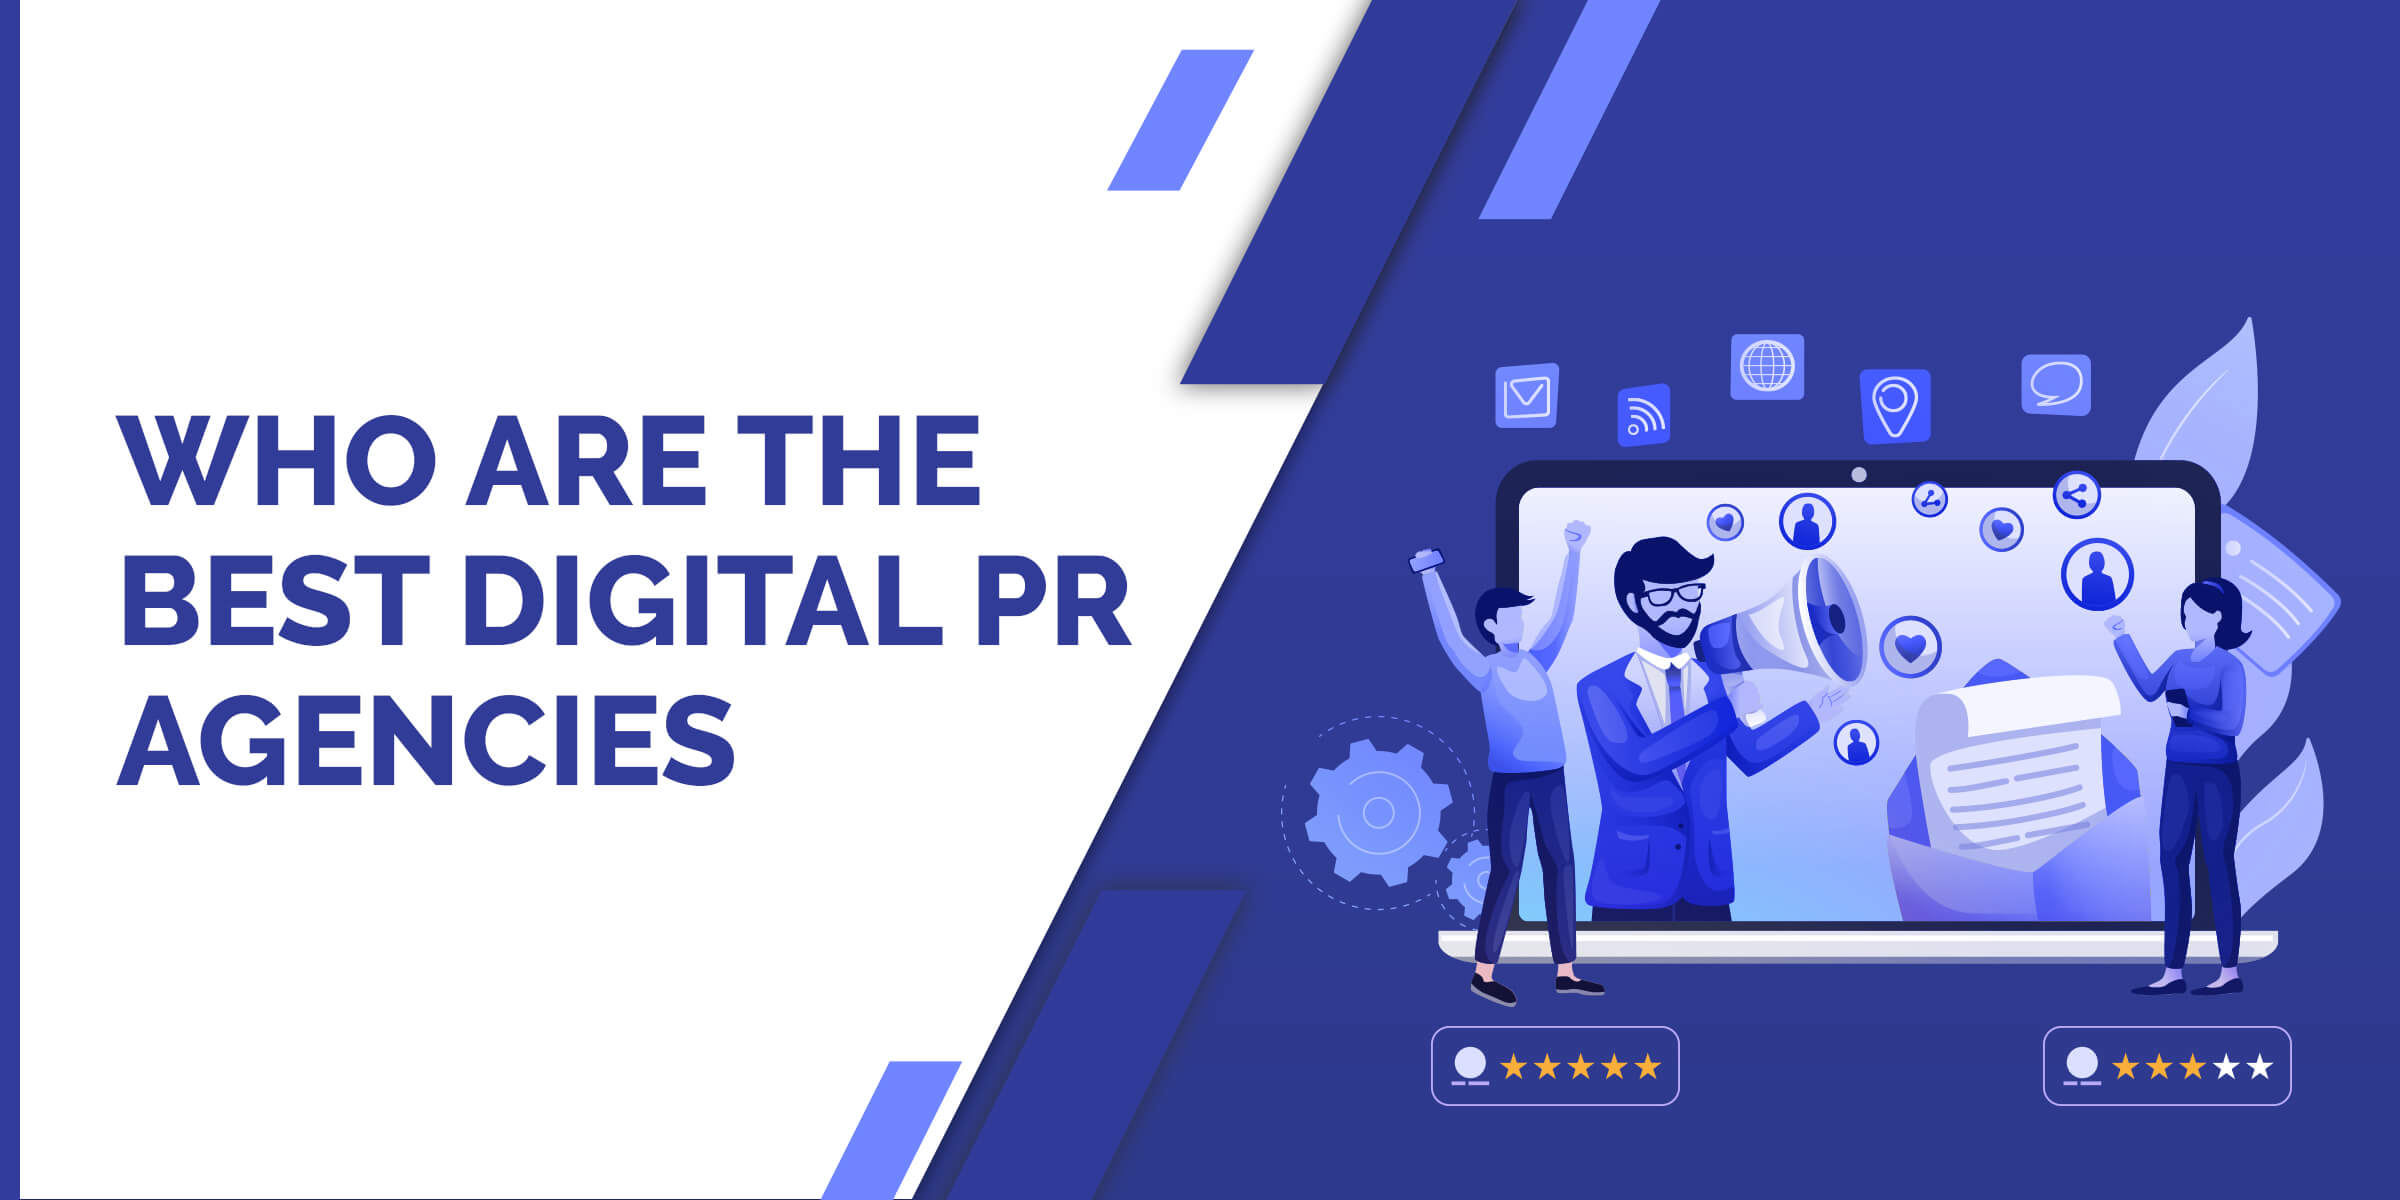 Who Are the Best Digital PR Agencies